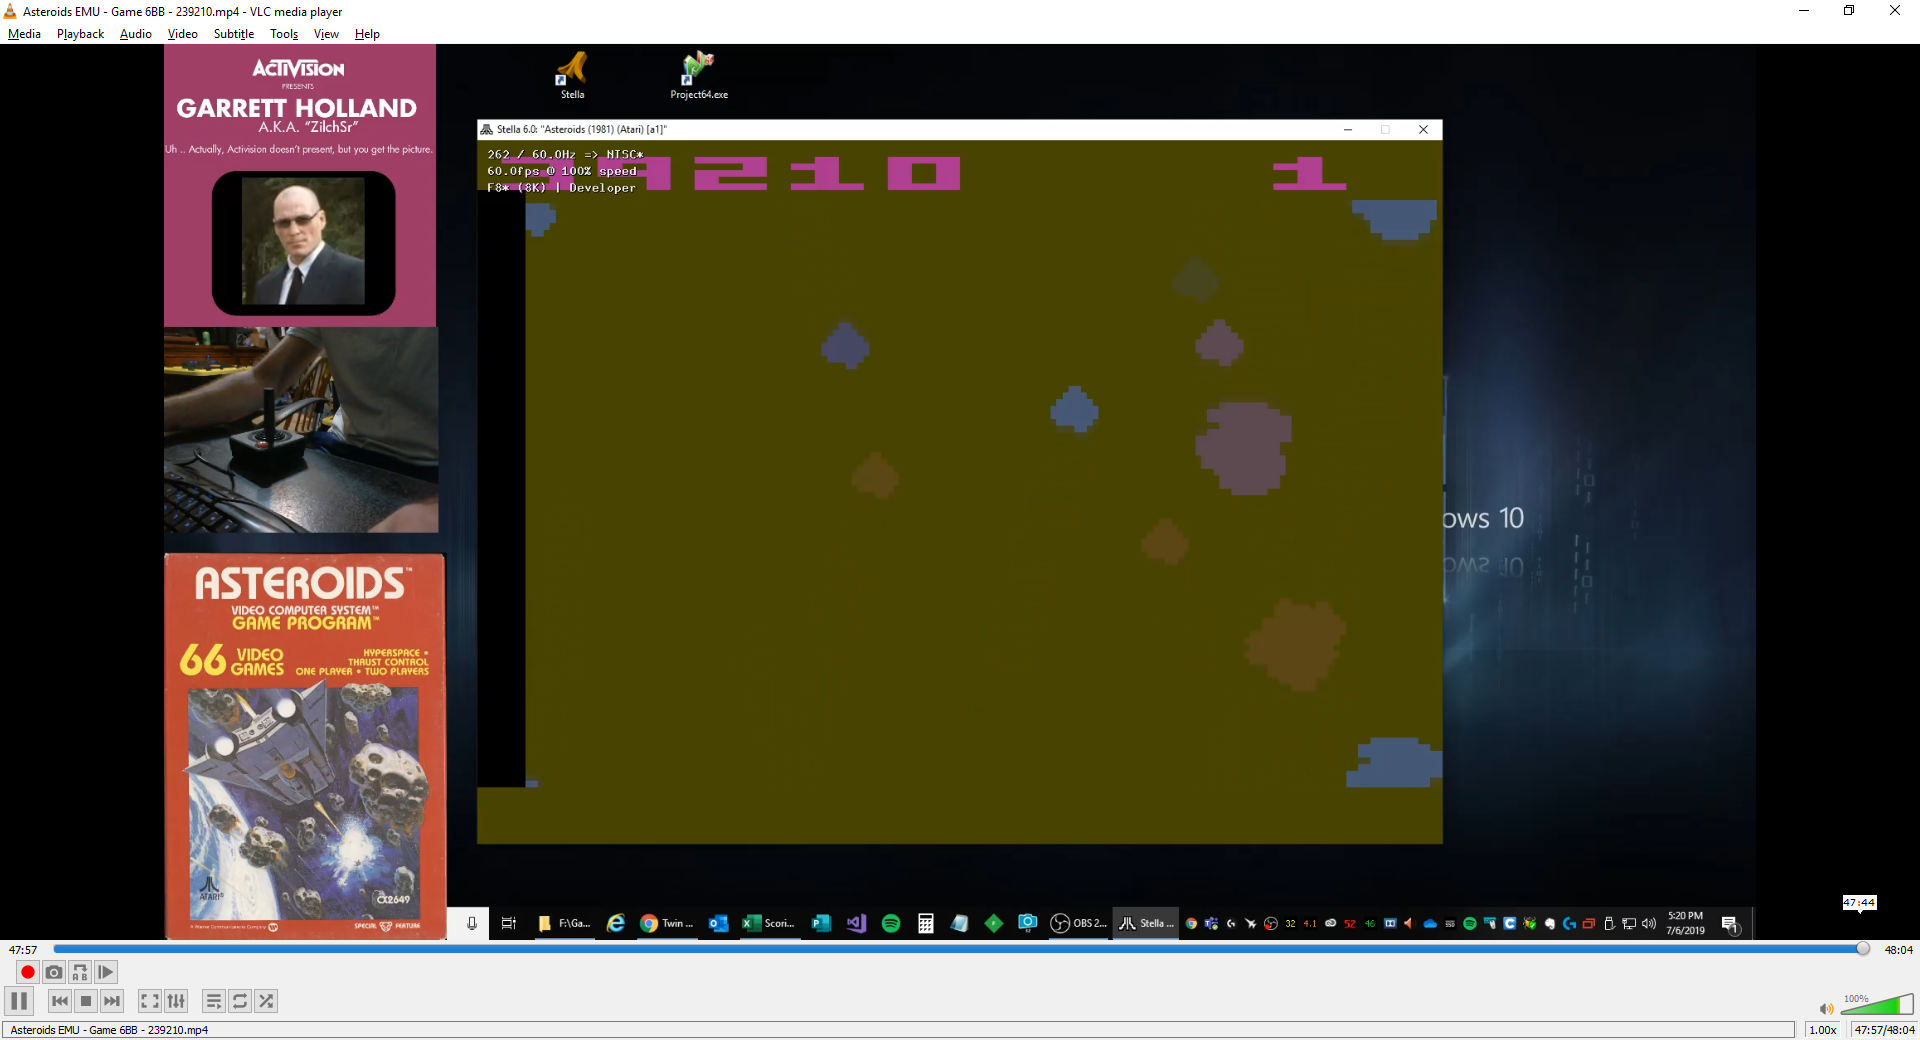 ZilchSr: Asteroids: Game 6 (Atari 2600 Emulated Novice/B Mode) 239,210 points on 2019-07-06 16:35:11